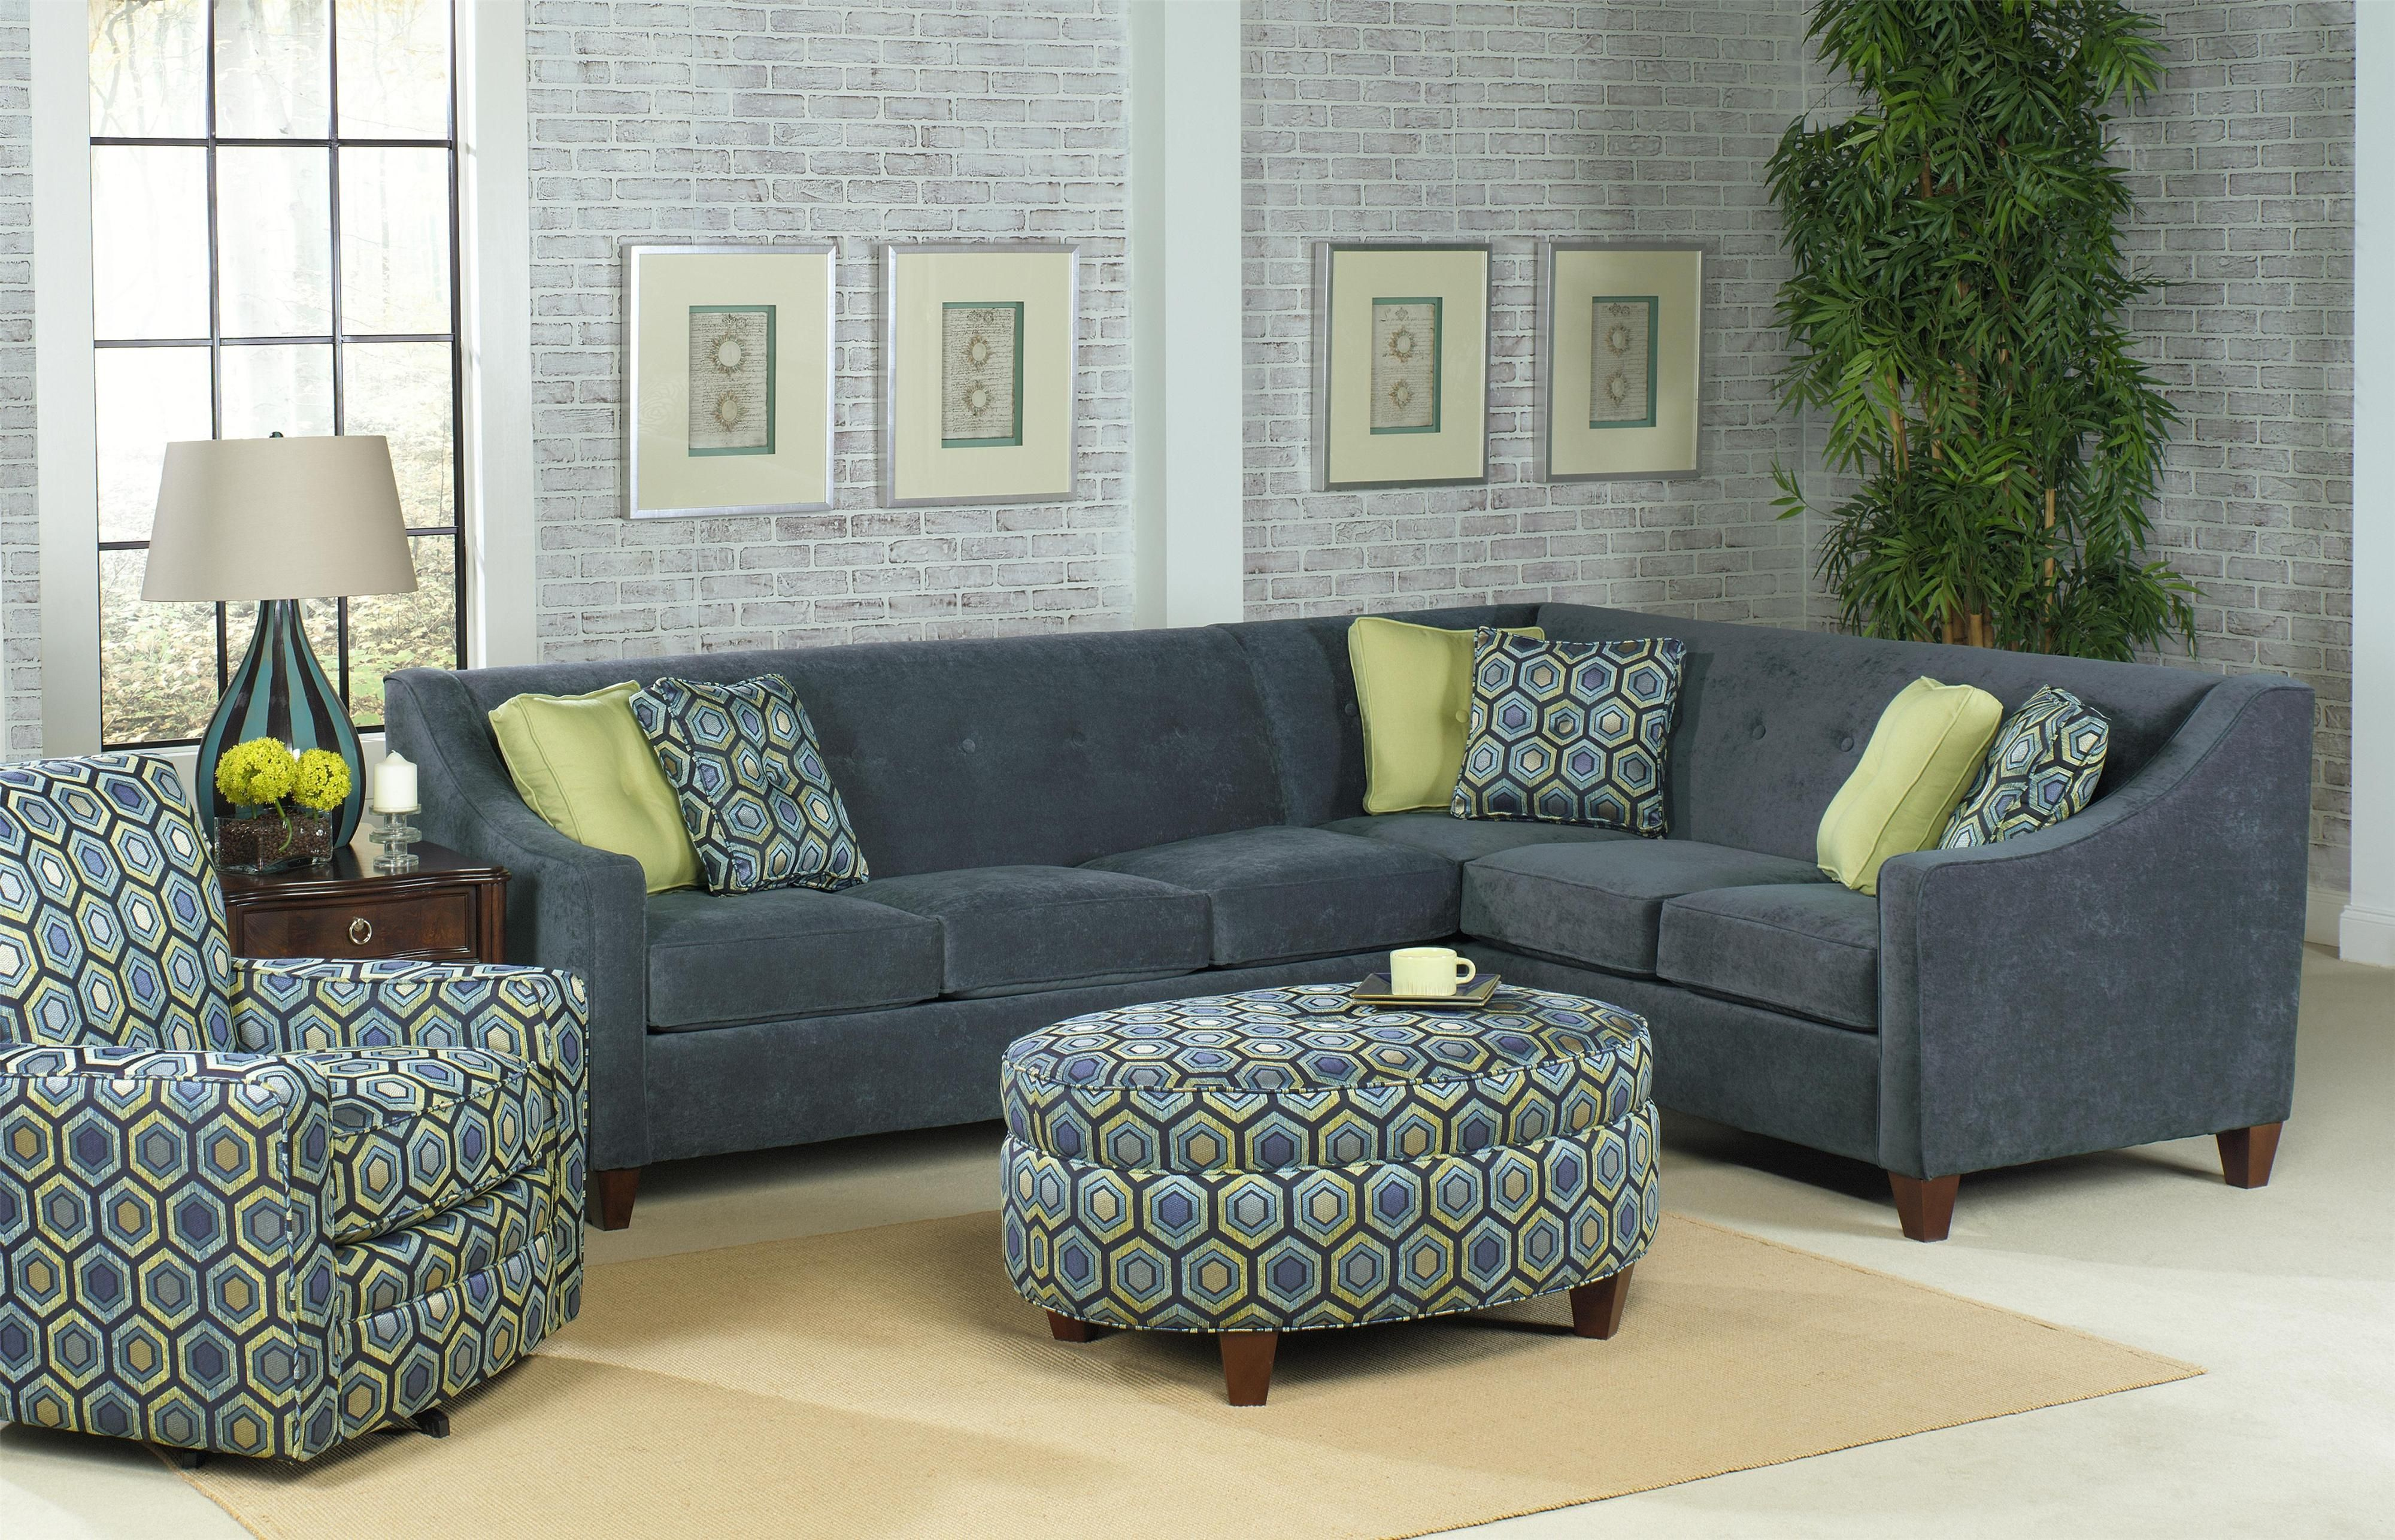 Old Brick Furniture In Albany Ny Contemporary 2 Piece Sectional With Sloped Track Arms By Craftmaster Sofa Capital Region